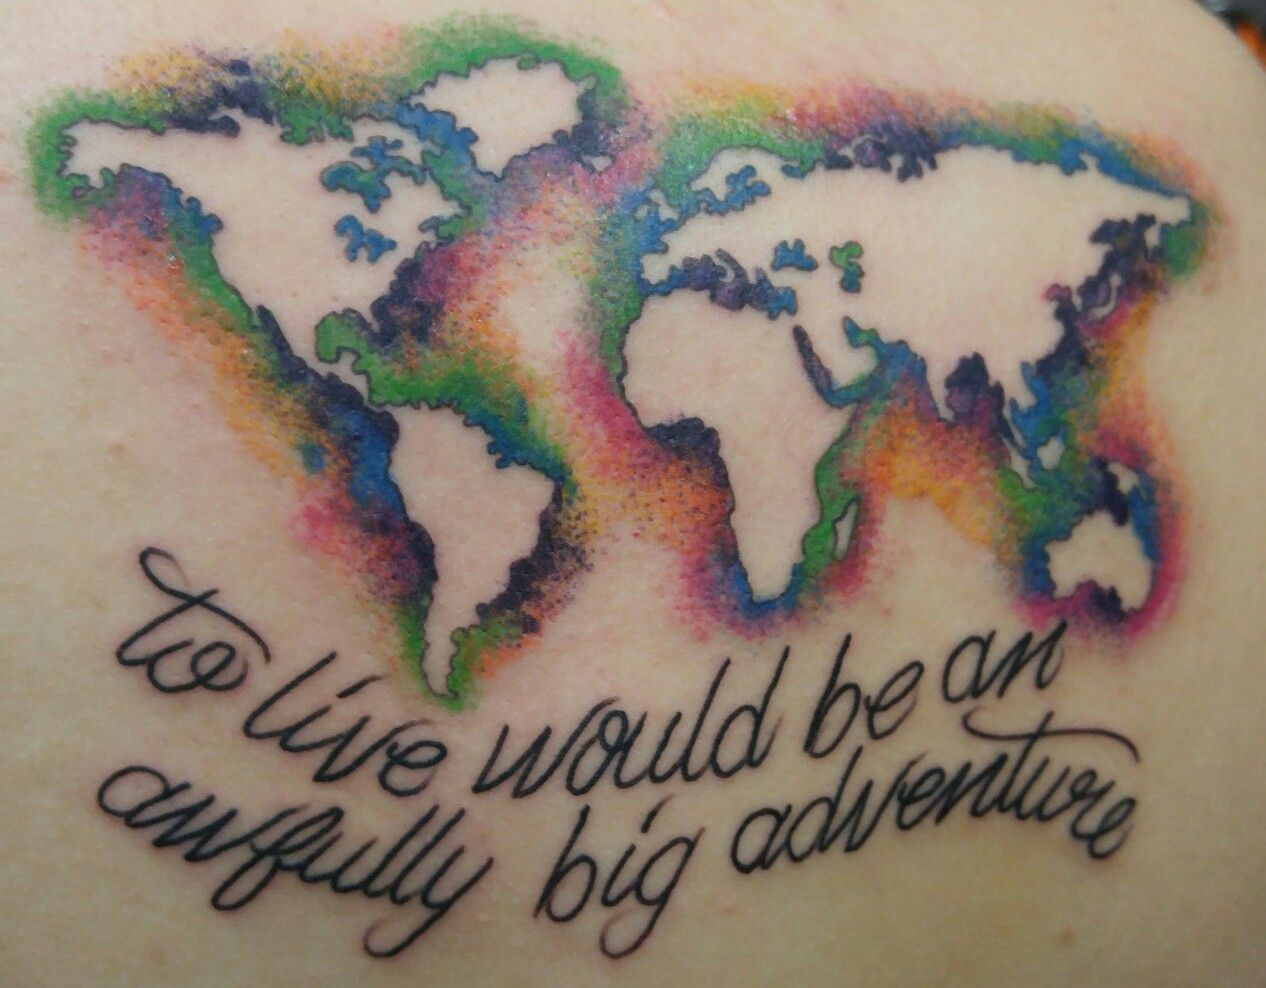 Sweet negative space watercolor world map tattoo from dustin at self sweet negative space watercolor world map tattoo from dustin at self inflicted studios in st peters mo gumiabroncs Gallery